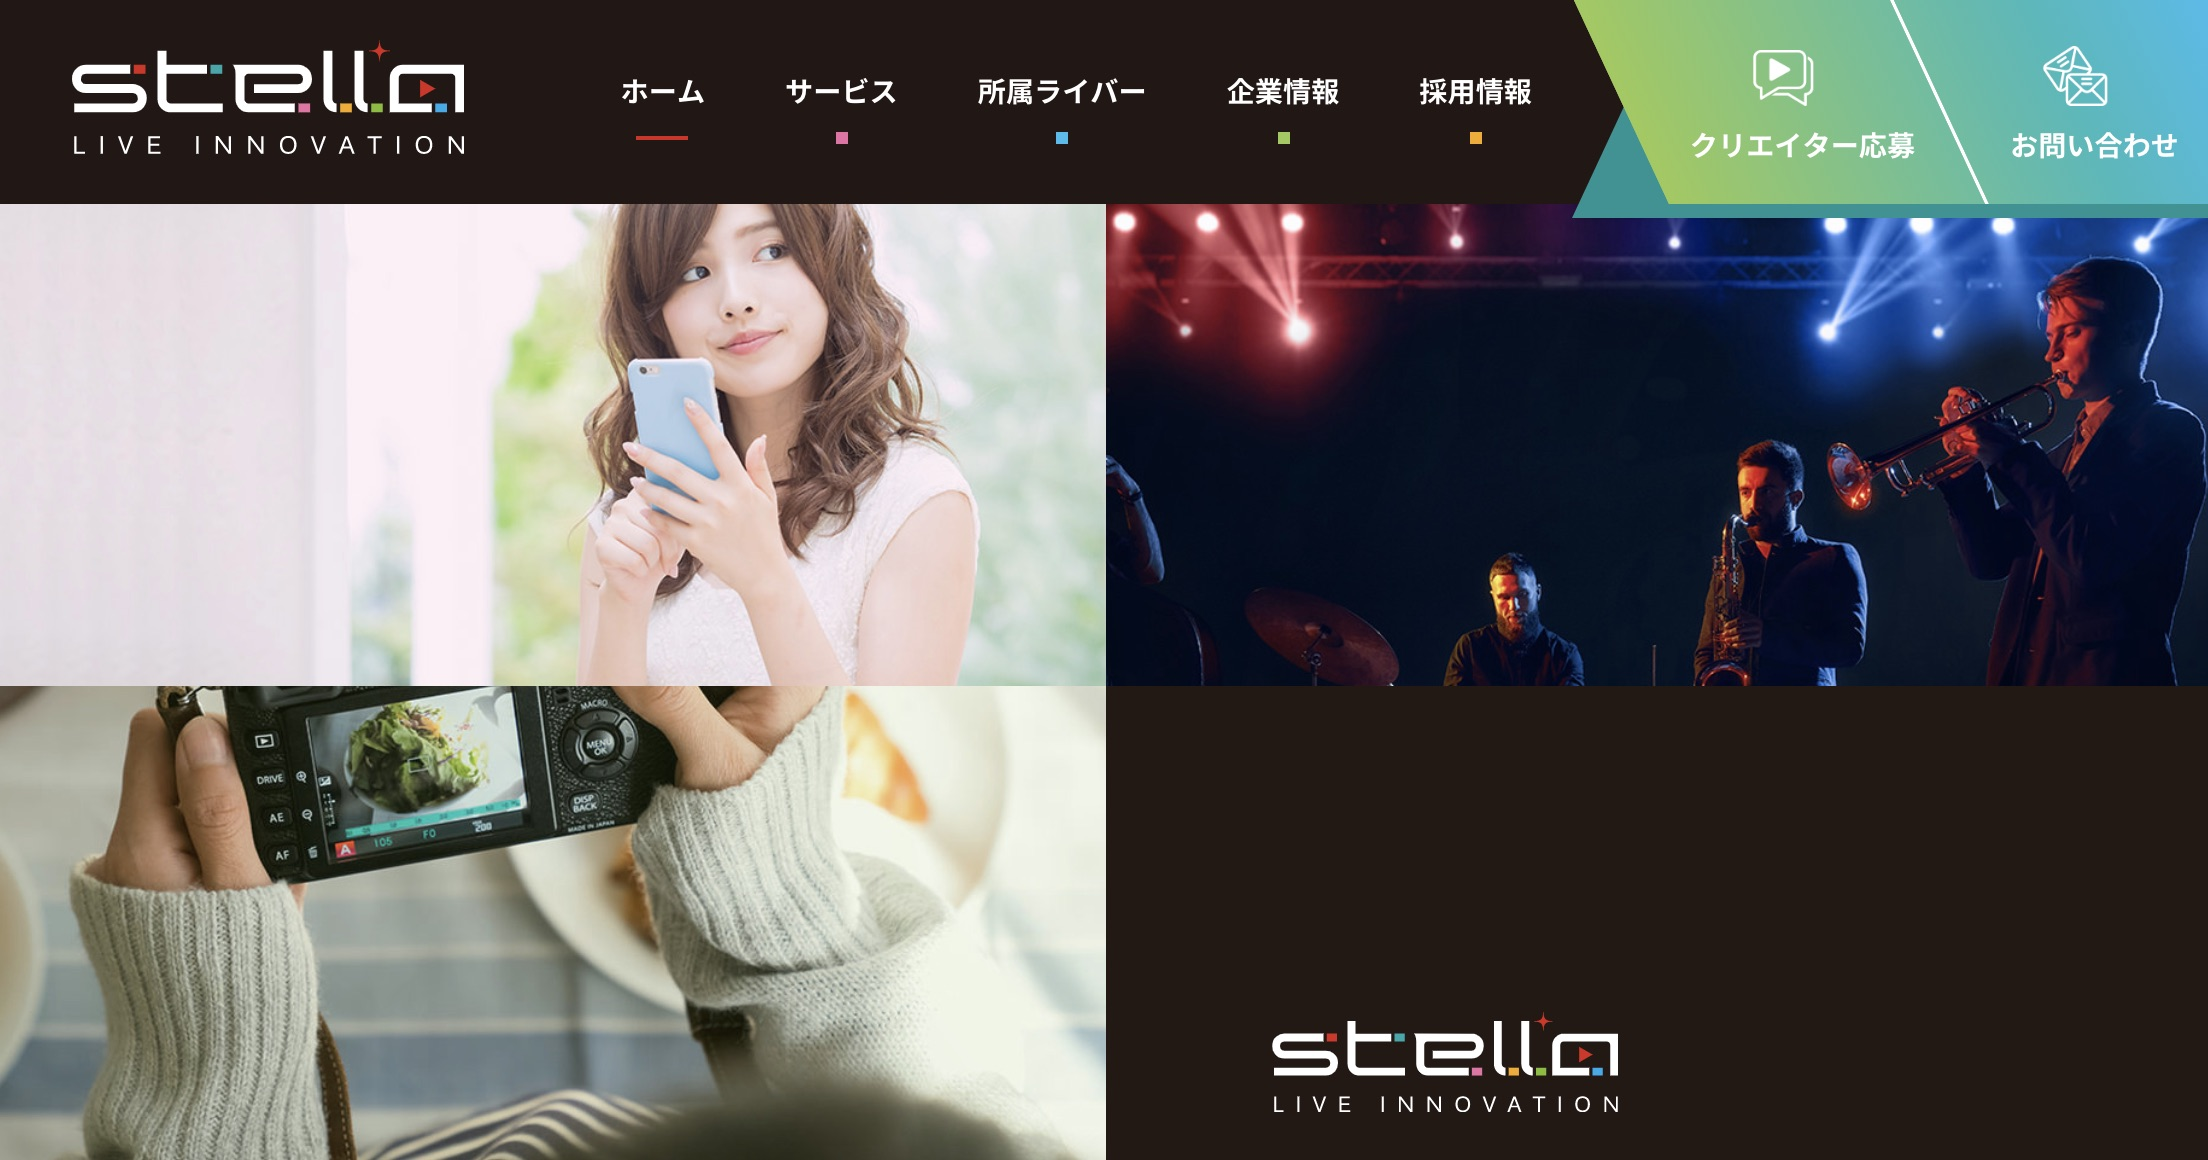 ステラライブ | Stella Live Innovation